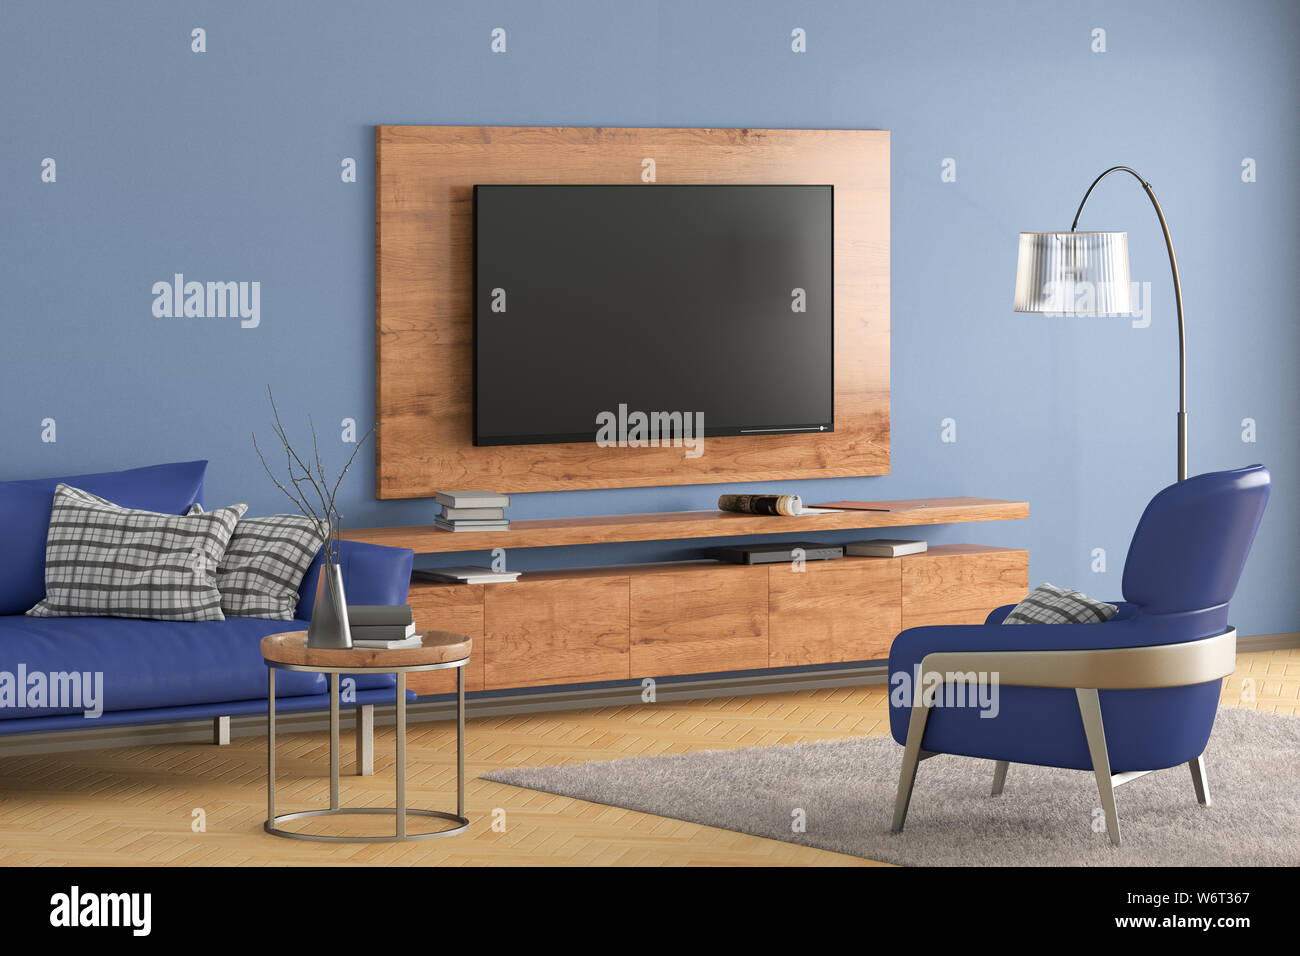 Tv On The Blue Wall Of Modern Living Room With Blue Leather Cabinet And Armchair Couch Coffee Table Floor Lamp And Fur Carpet 3d Illustration Stock Photo Alamy